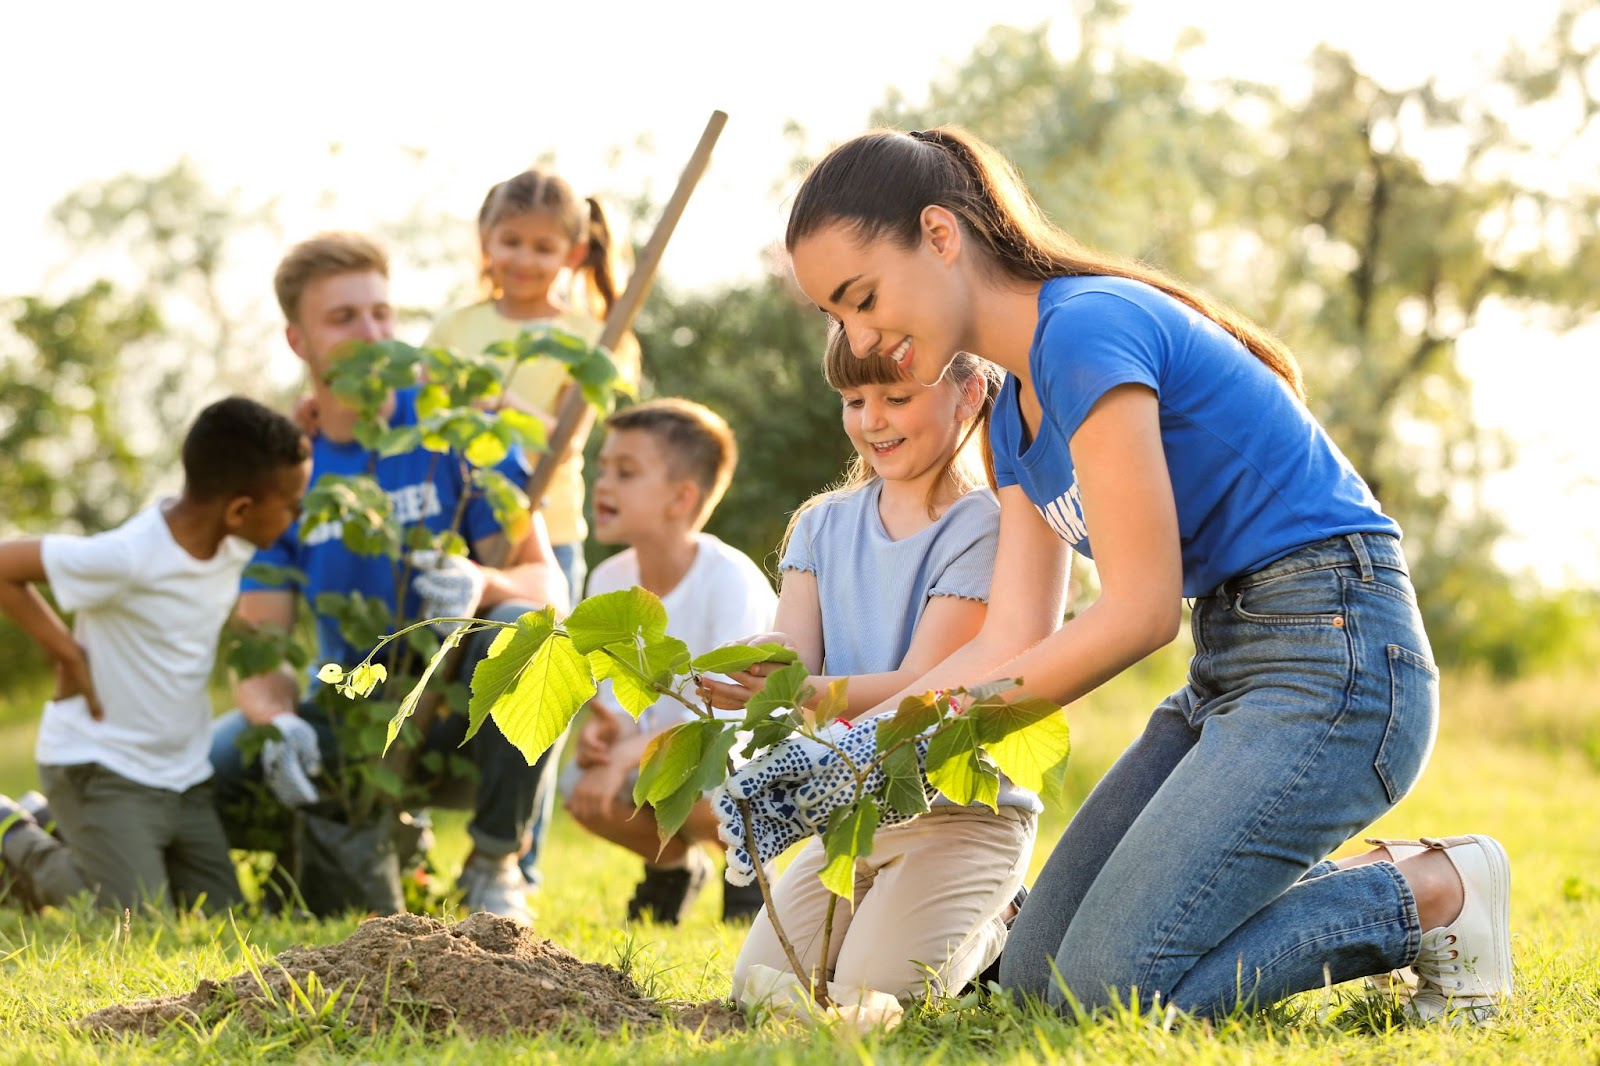 Image of children and young adults participating in community gardening.